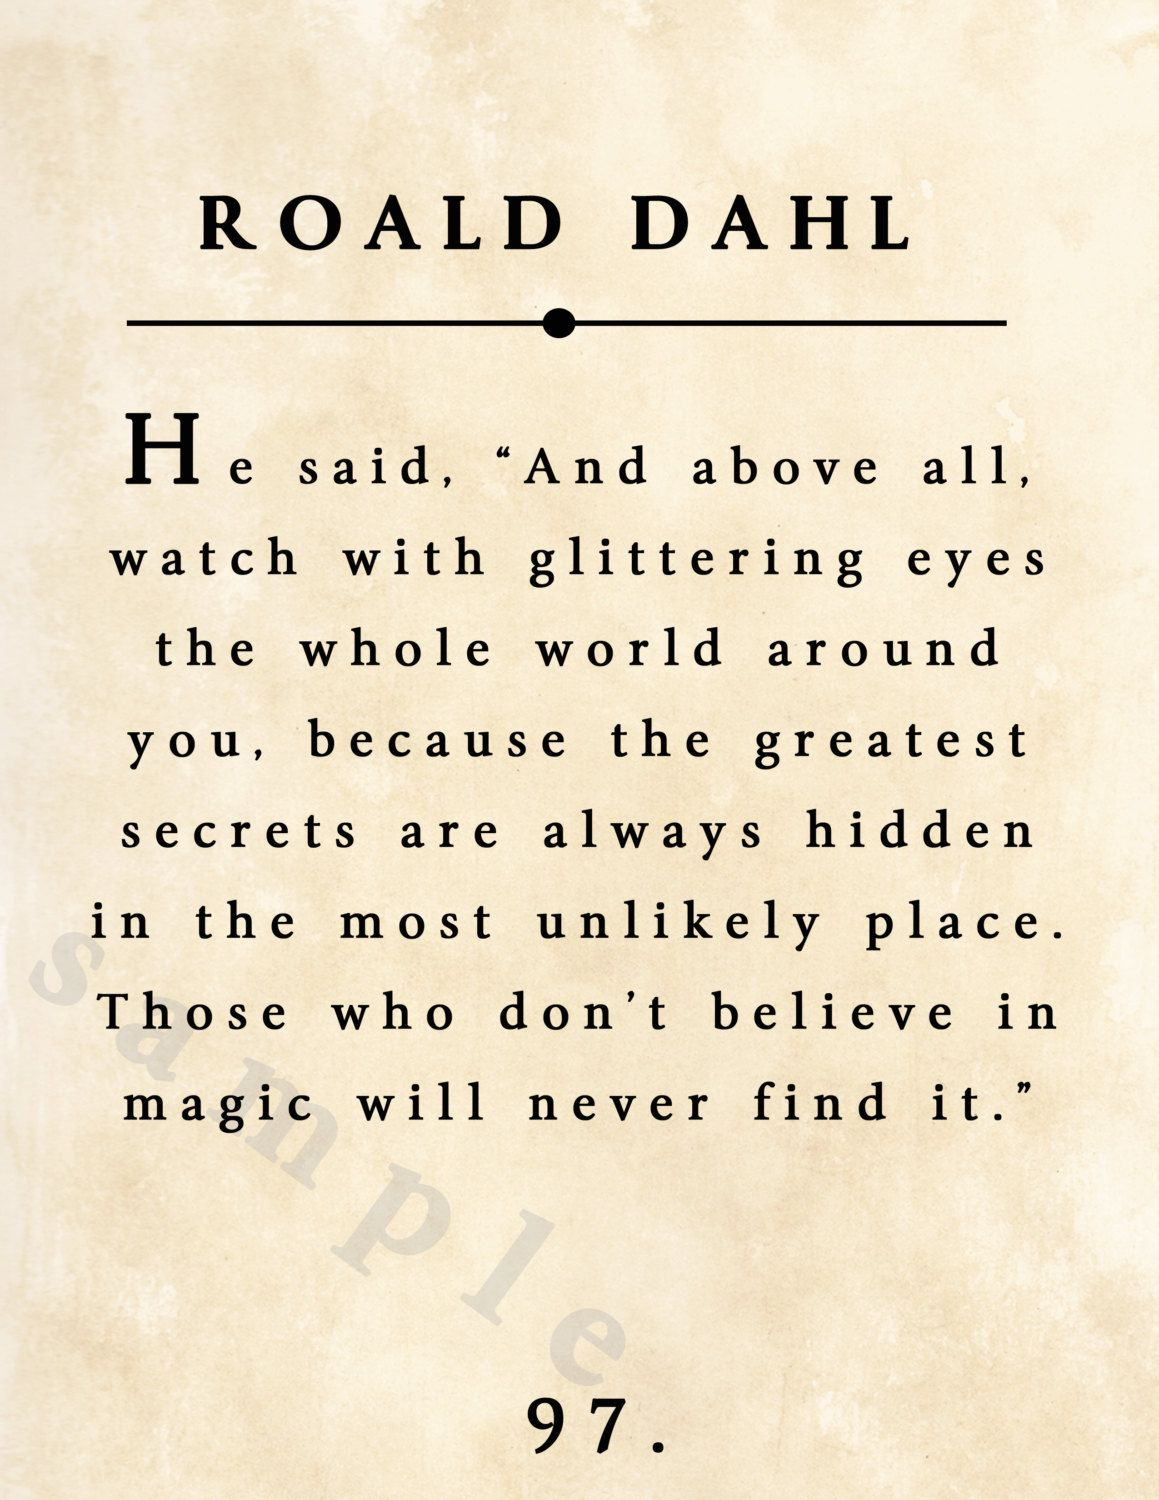 Roald Dahl Digital Print Instant Download With Distressed Old Book Page Background